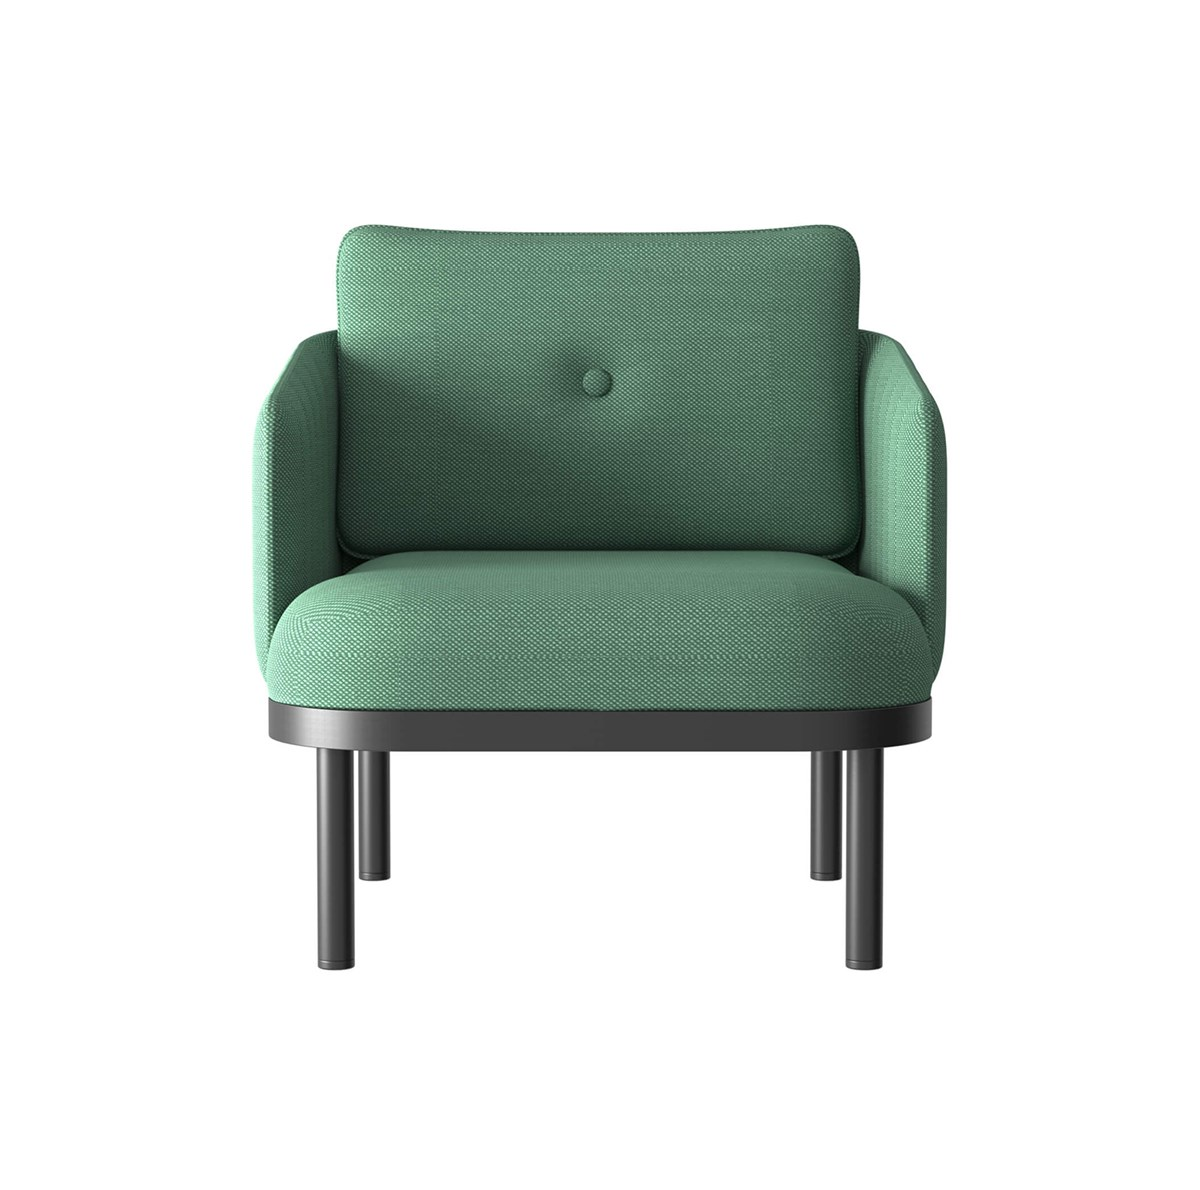 Neospace-Dwell-Sofa-Short-Back-Contract-Matisse-1